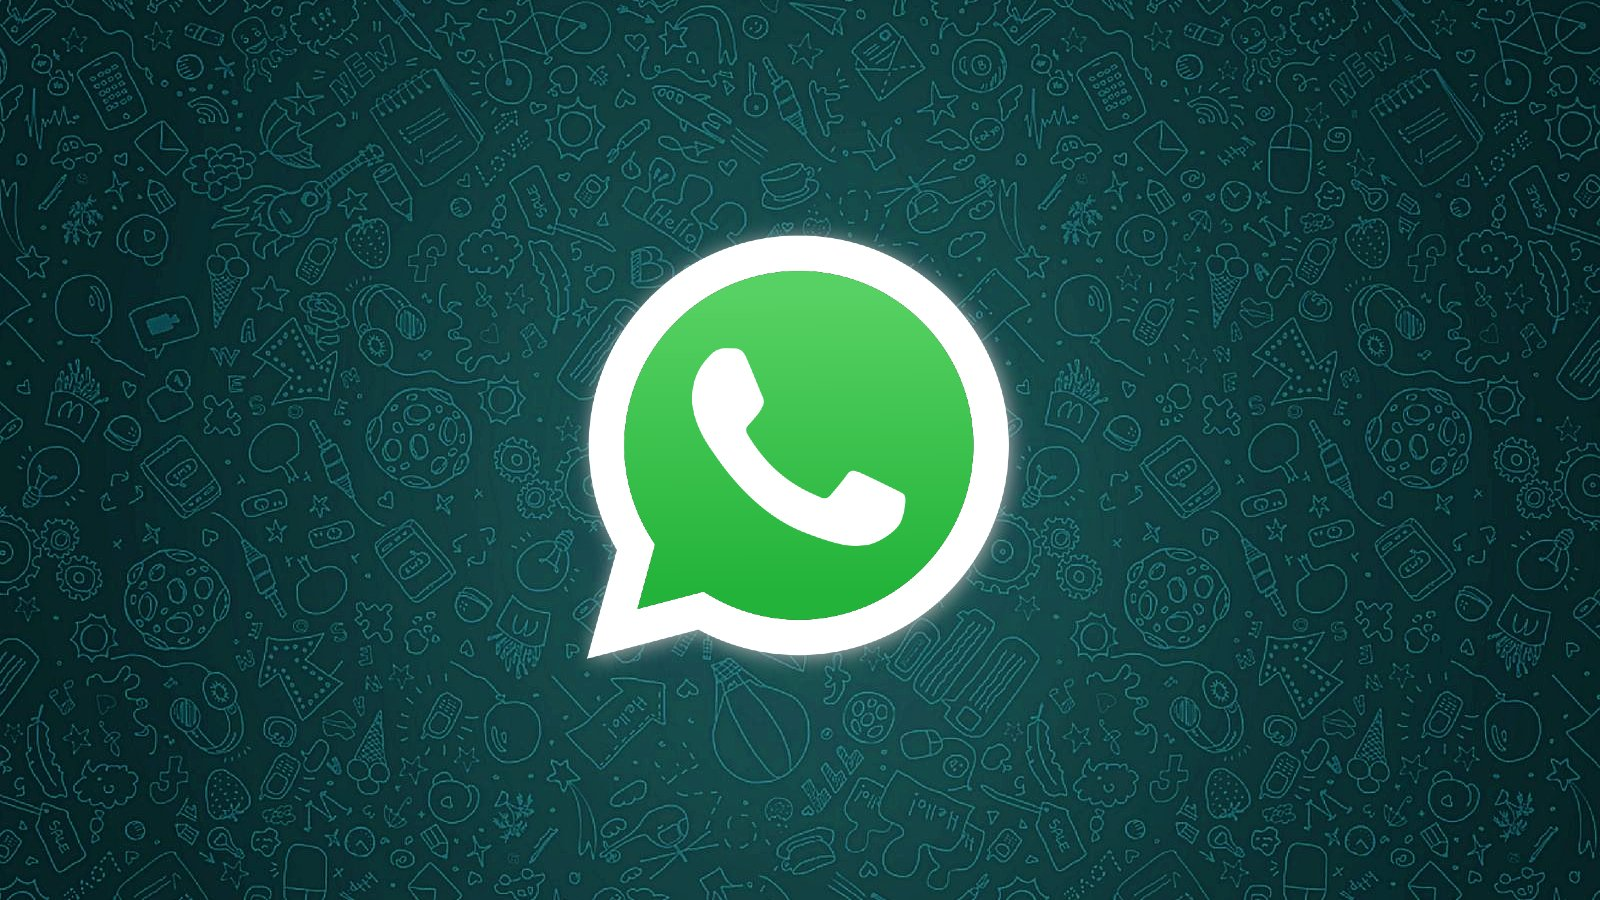 WhatsApp to appeal $266 million fine for violating EU privacy laws